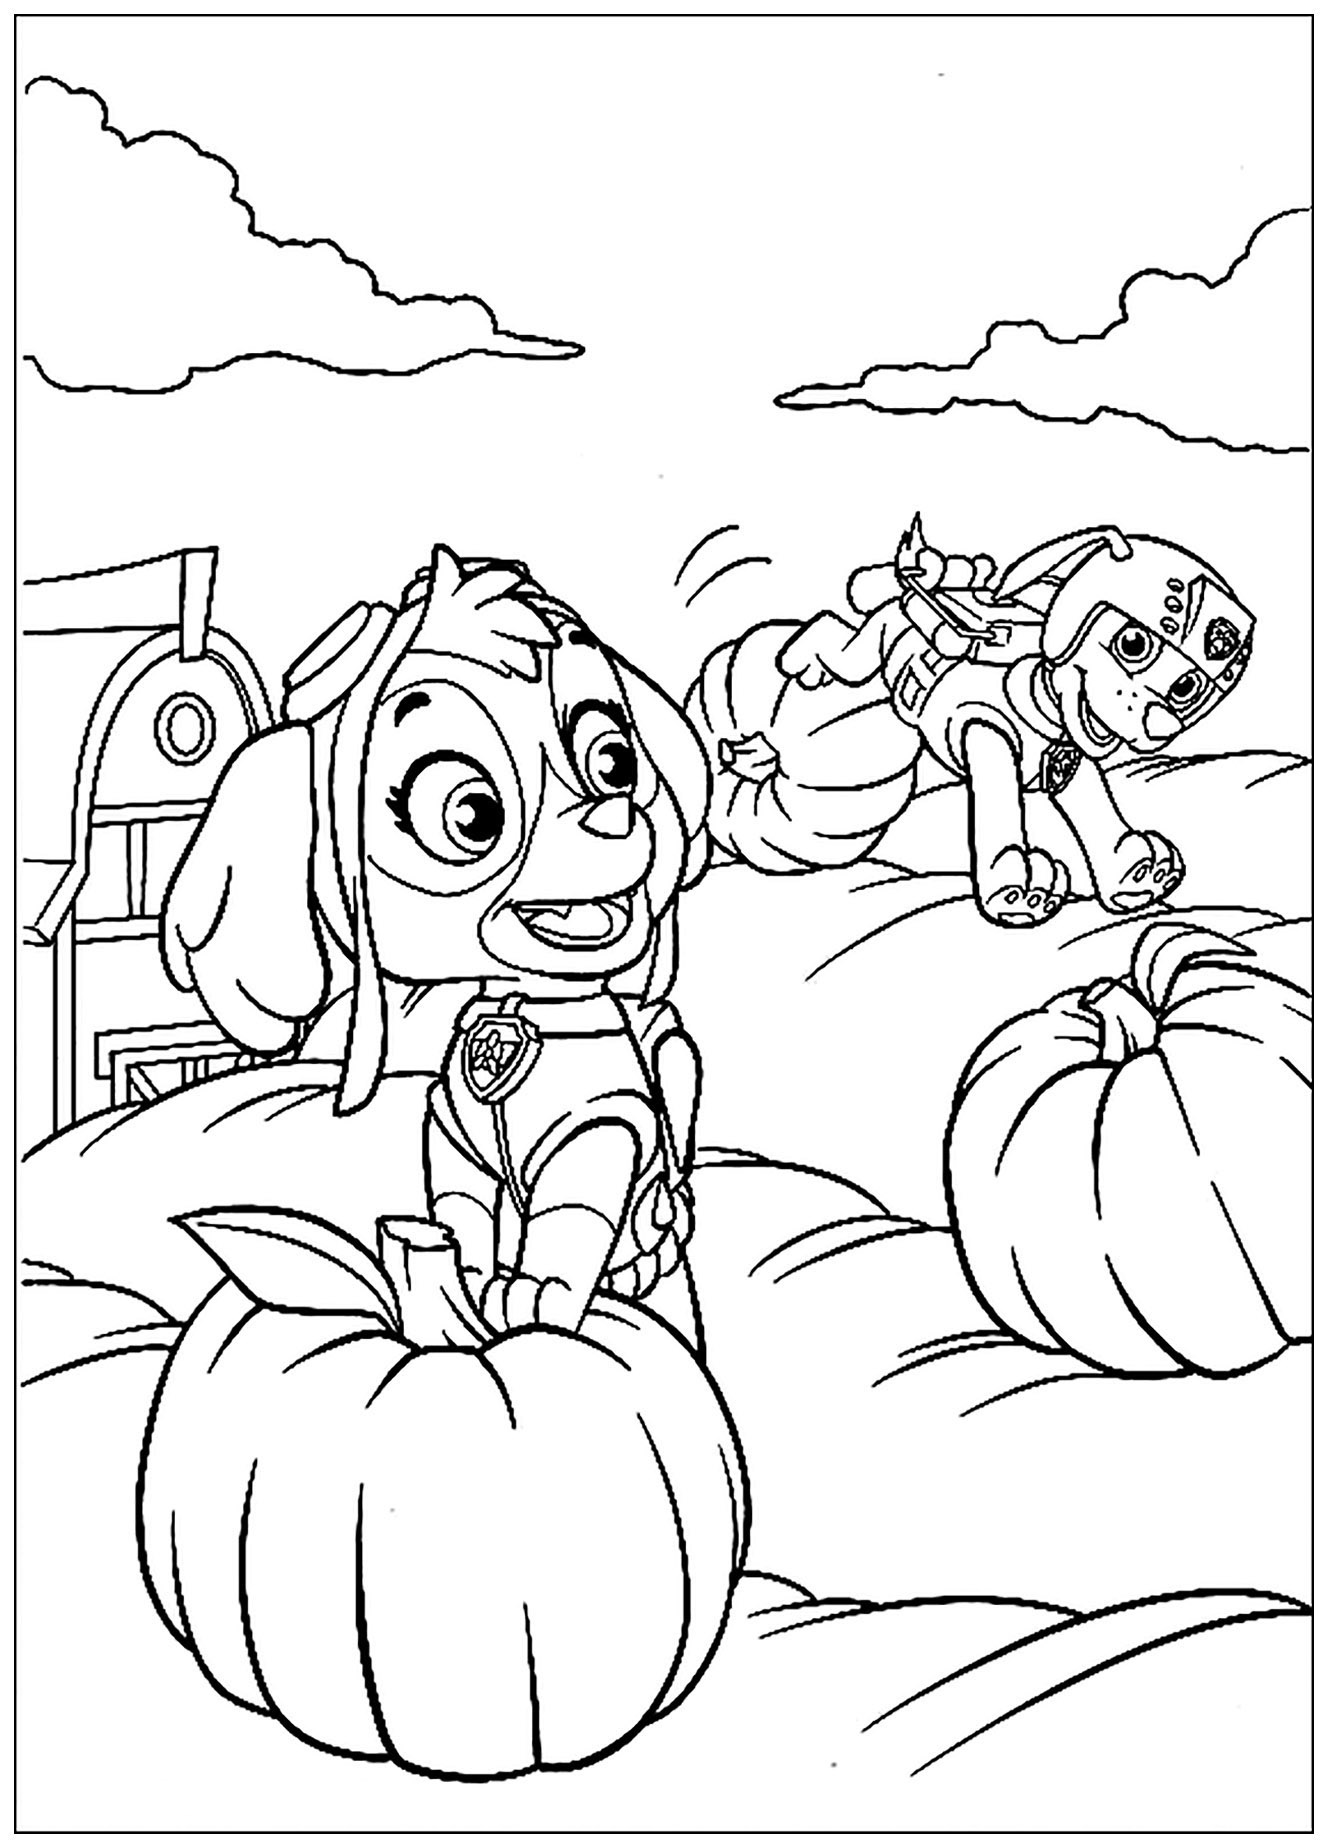 Simple Paw Patrol coloring page for children